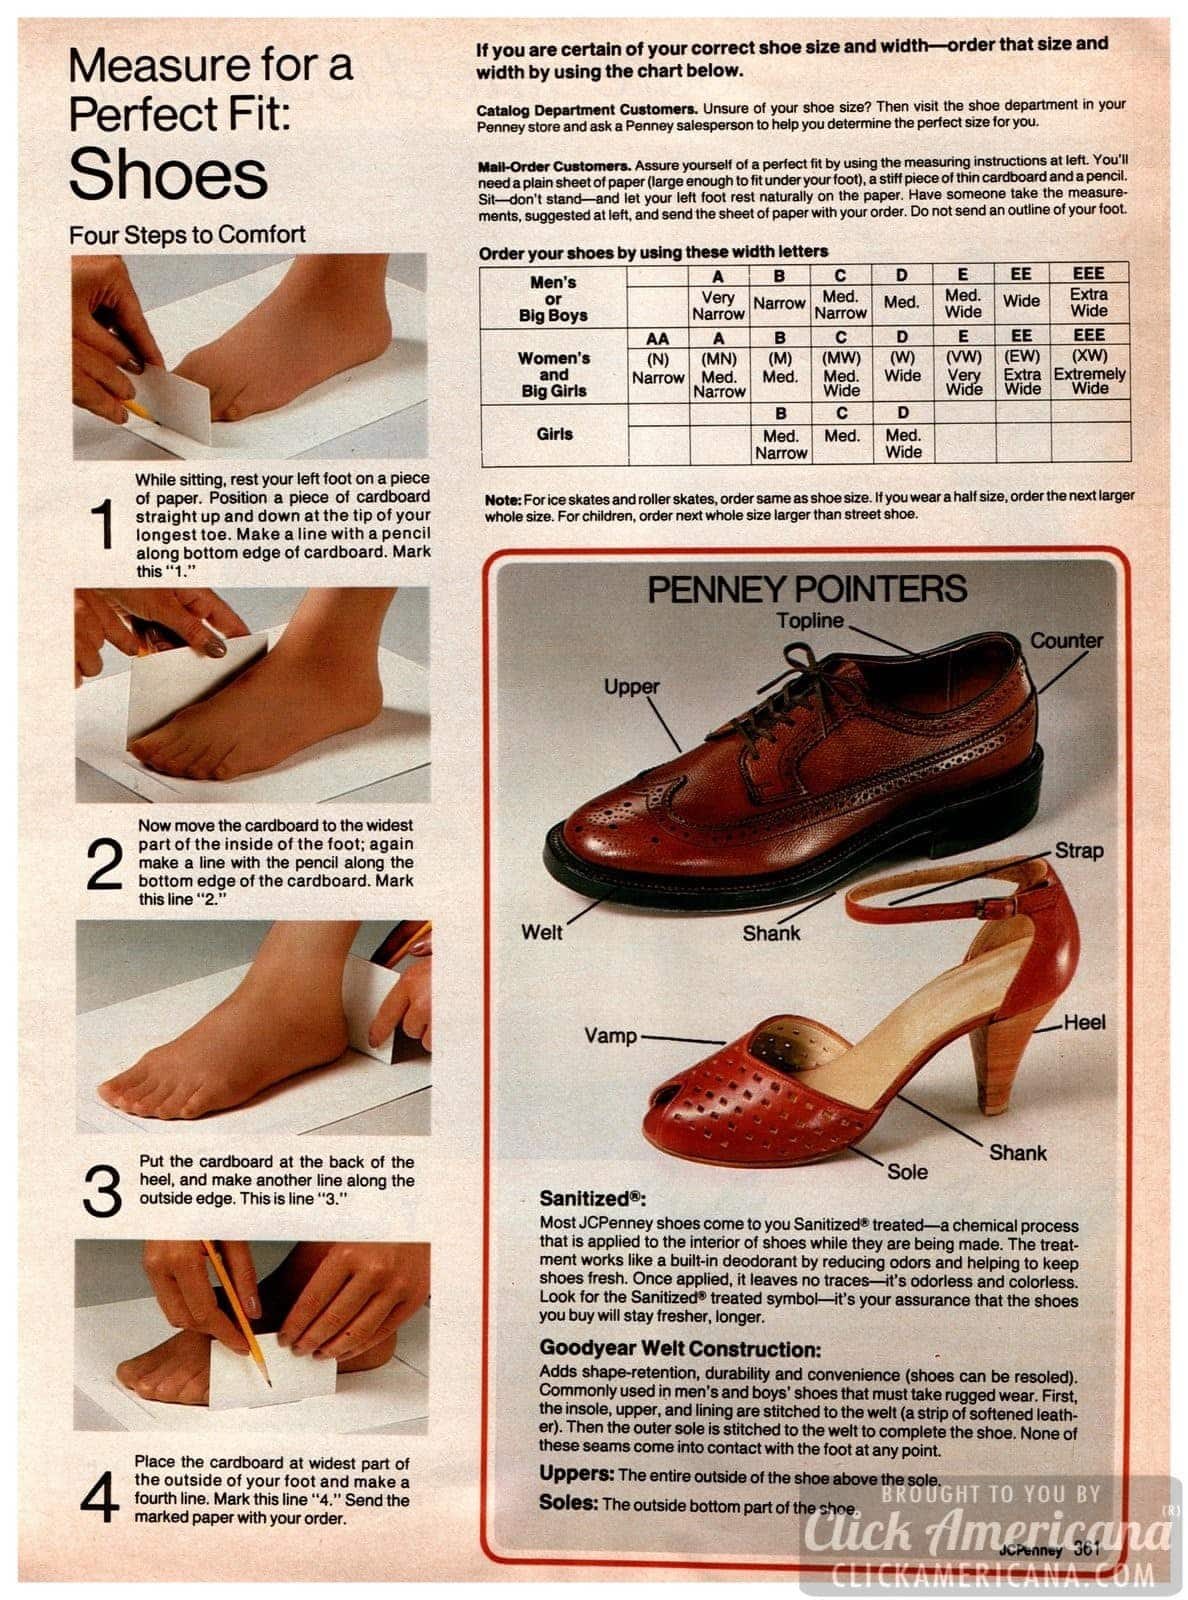 '80s info on how to measure your feet for shoes - men and women